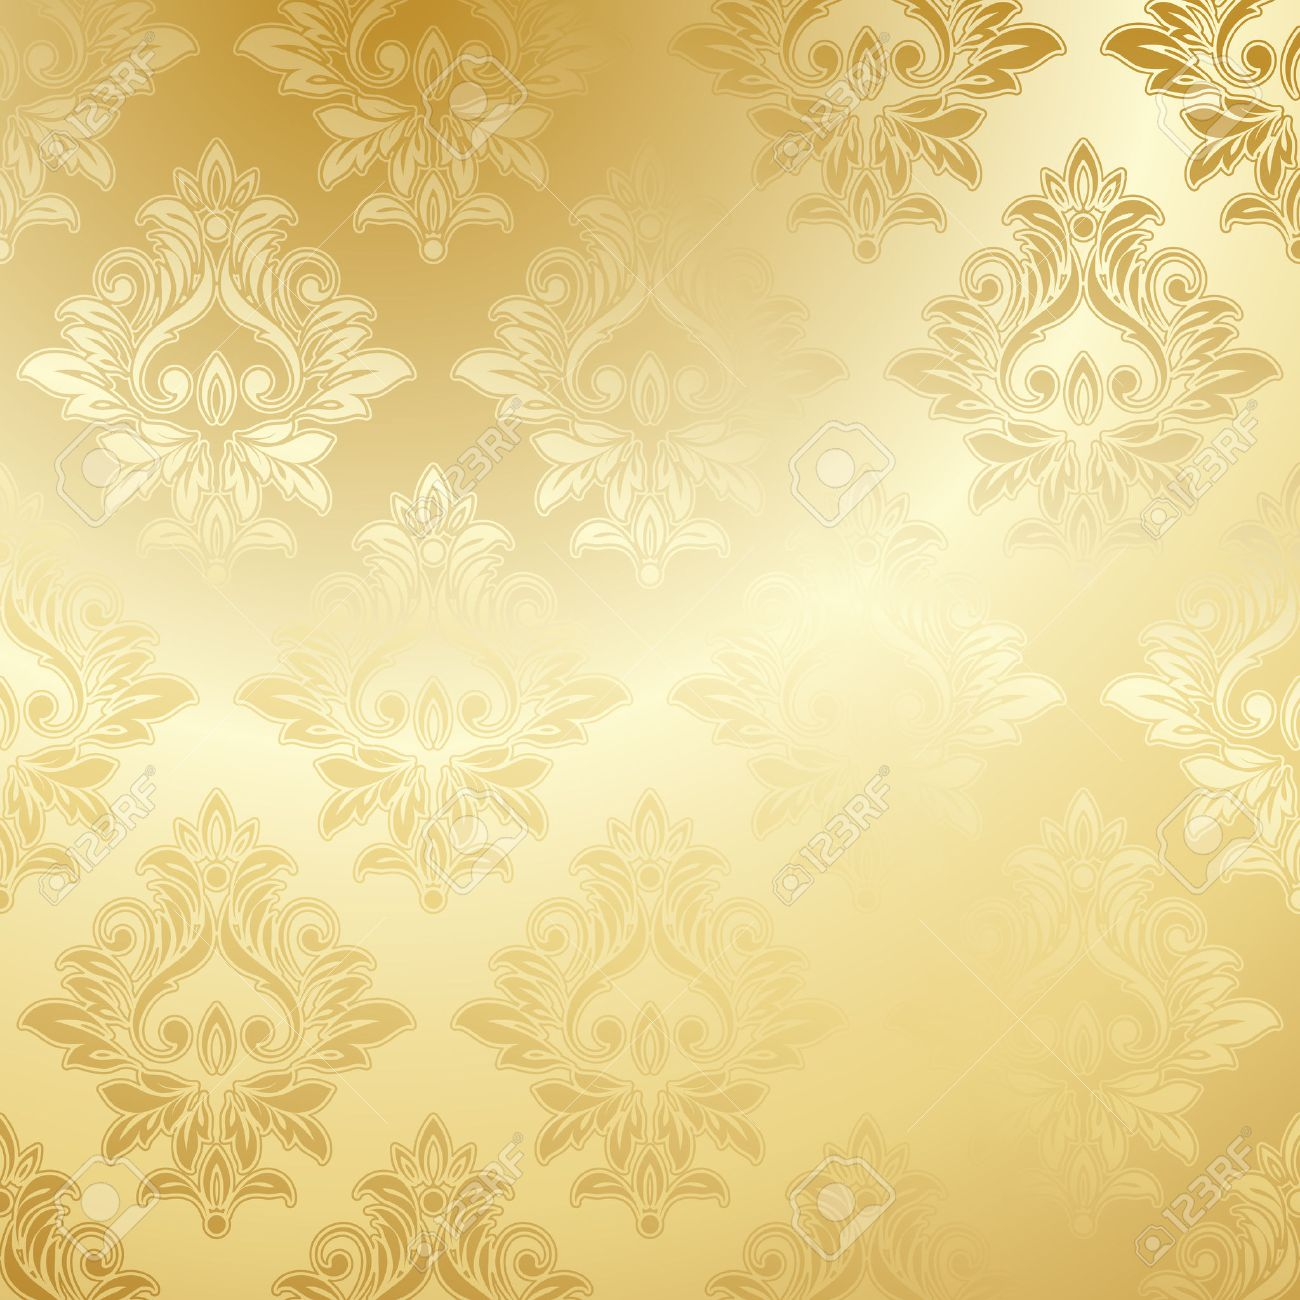 Luxury Golden Wallpaper Vintage Floral Pattern Vector Background